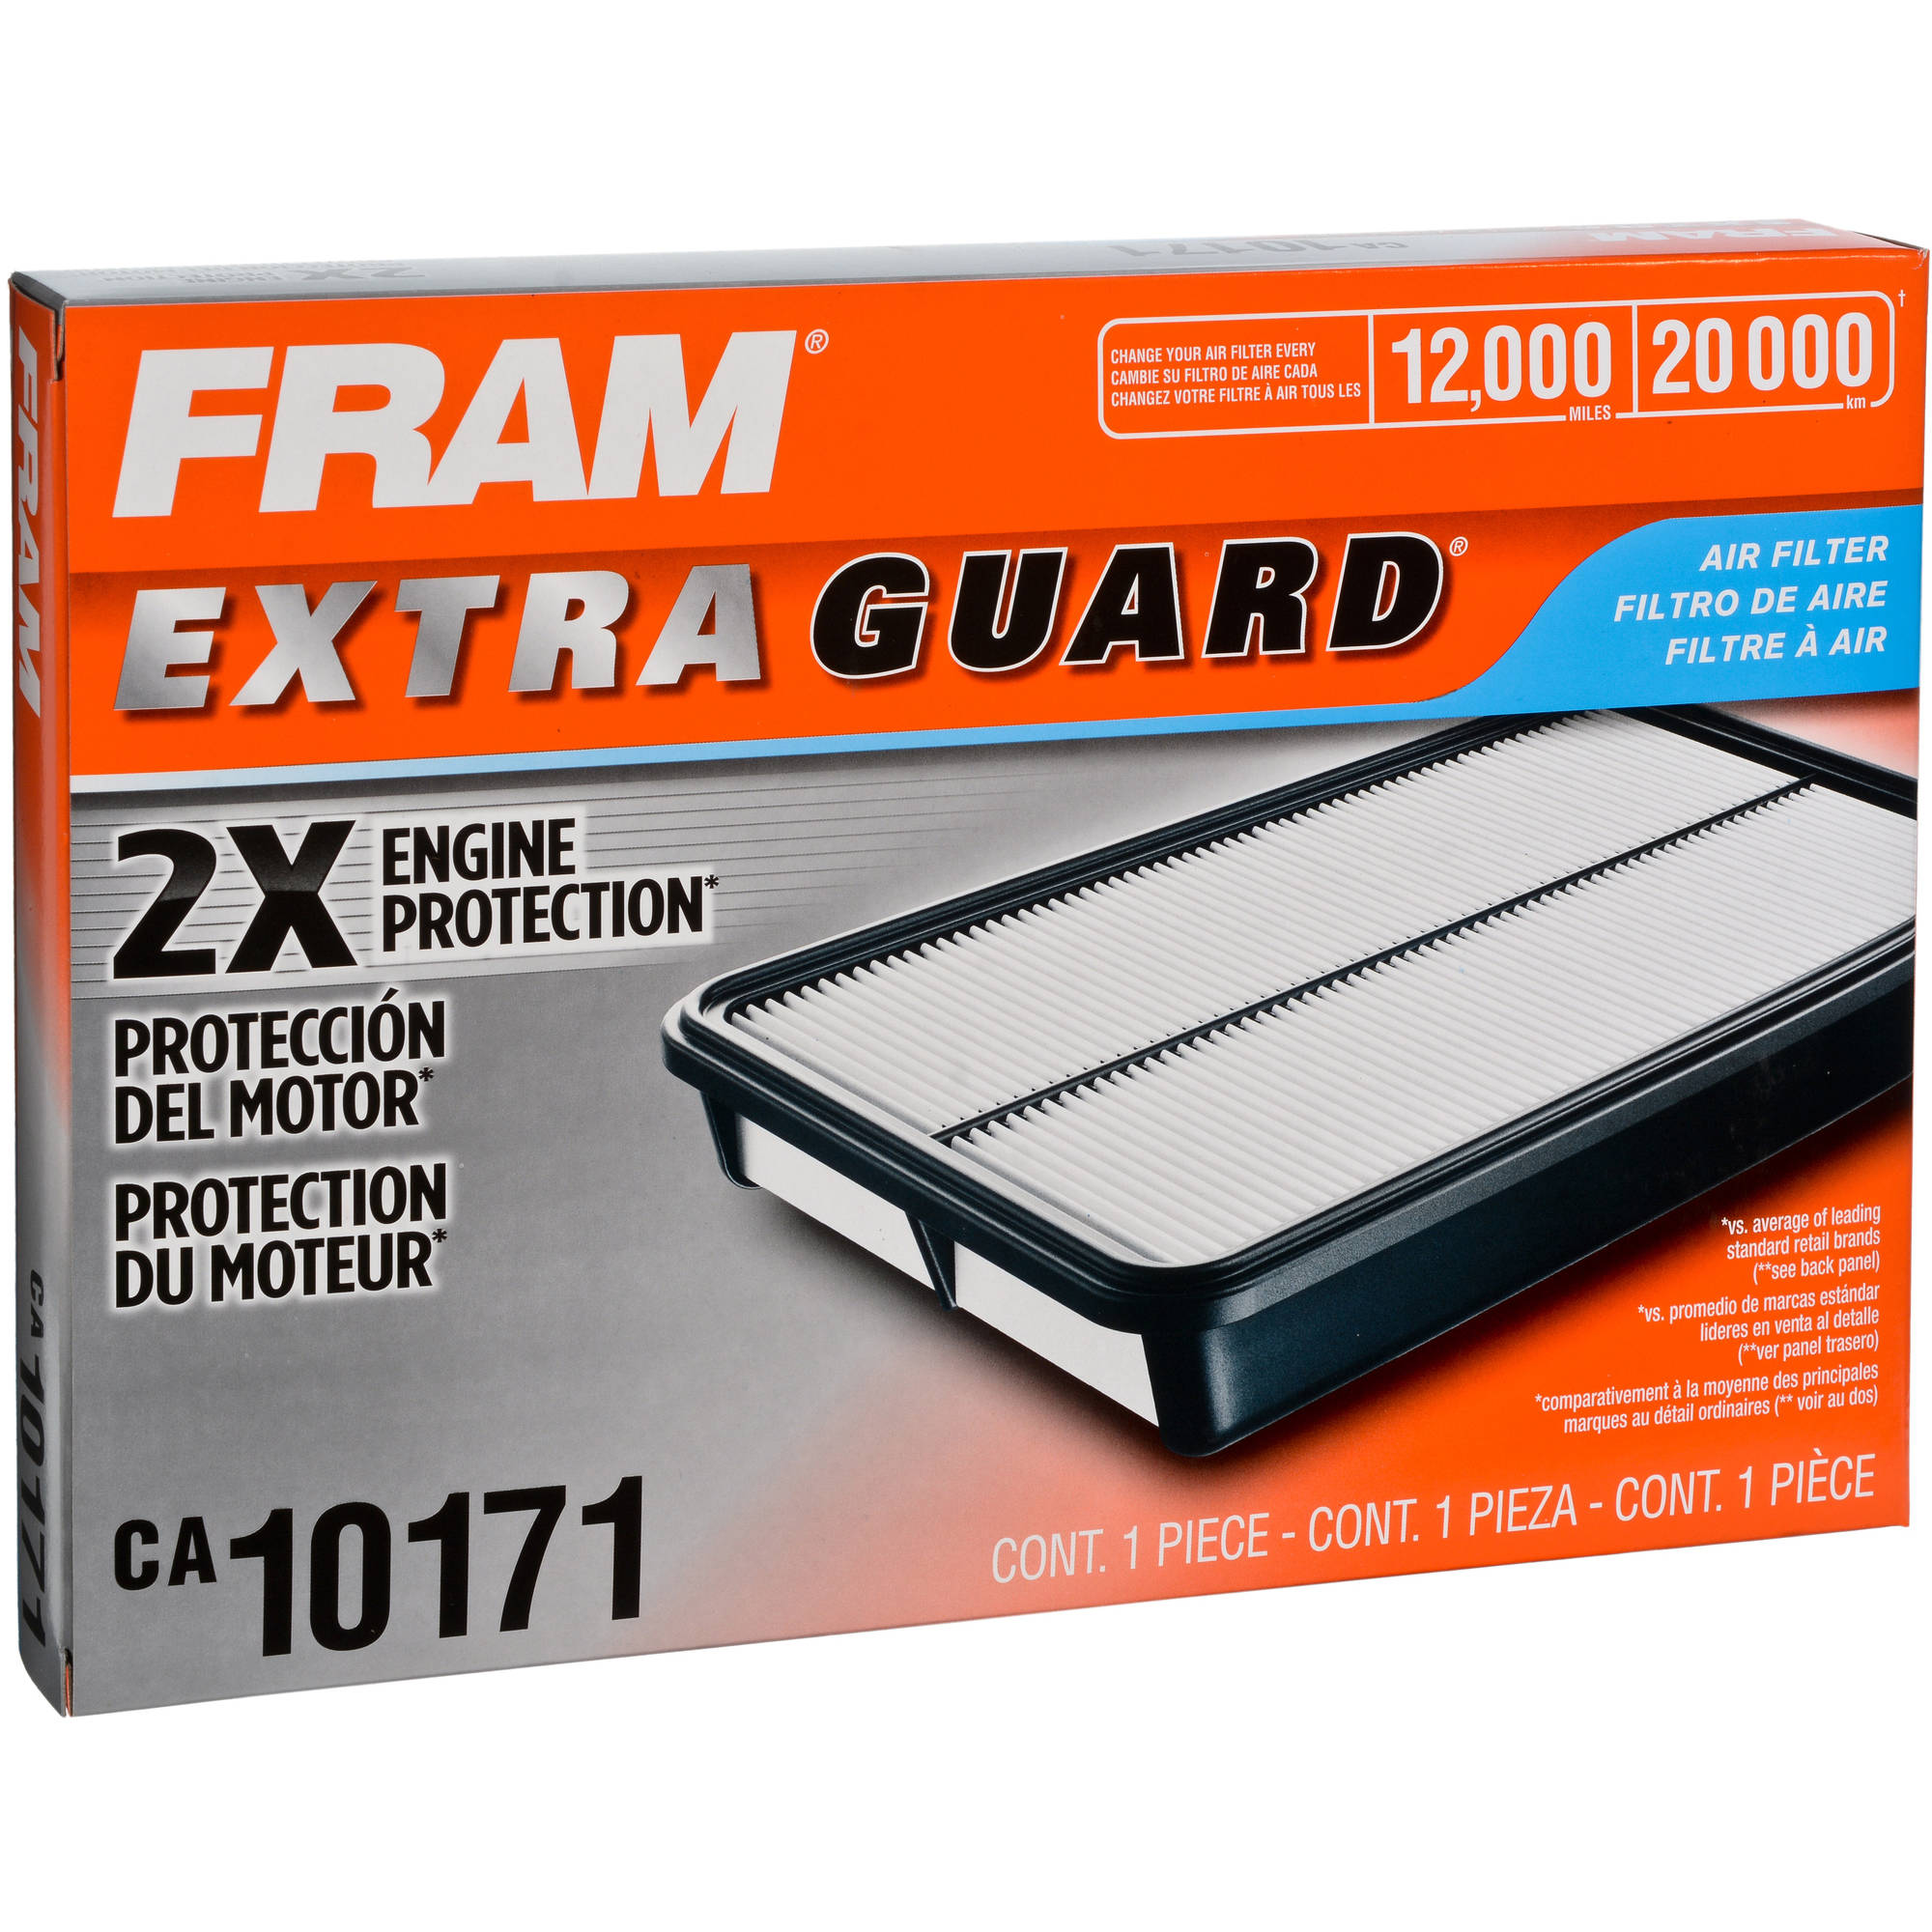 FRAM Extra Guard Air Filter, CA10171